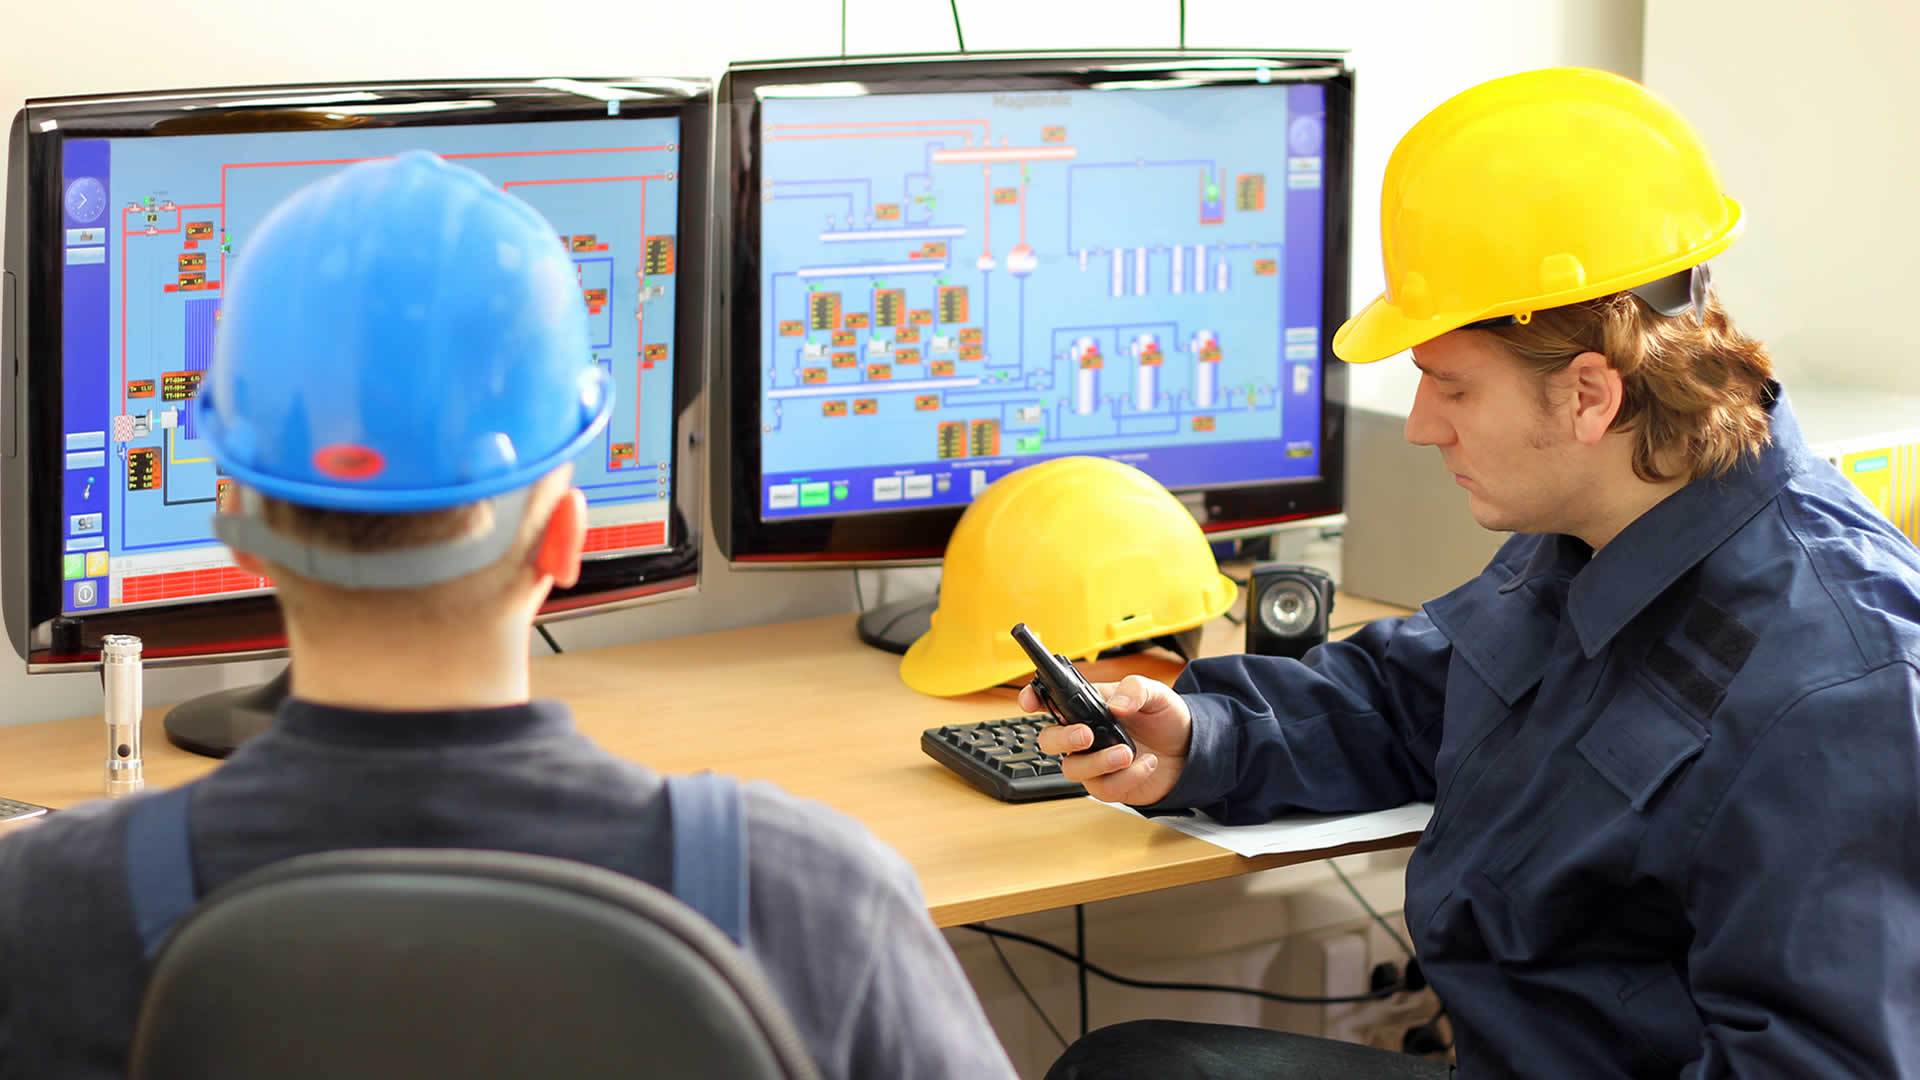 Operators in control room coomunicating manual valve positions